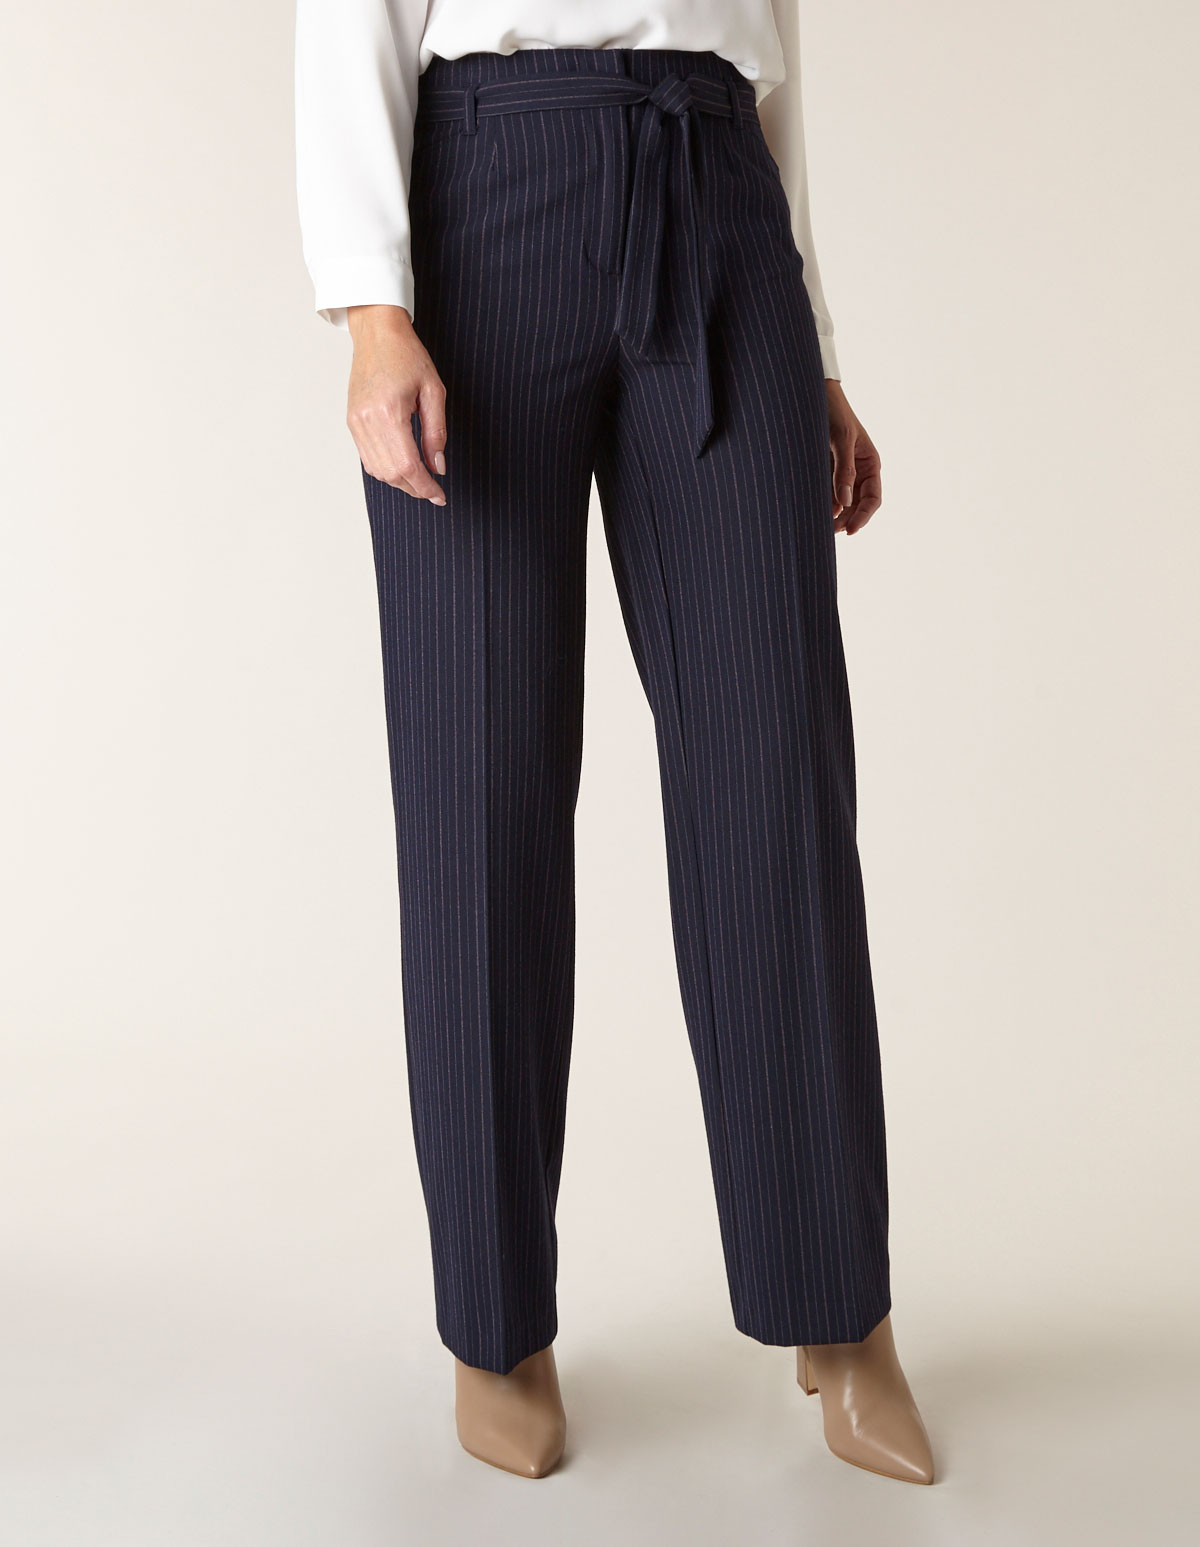 Navy Striped Soft Belted Trouser, Navy, hi-res